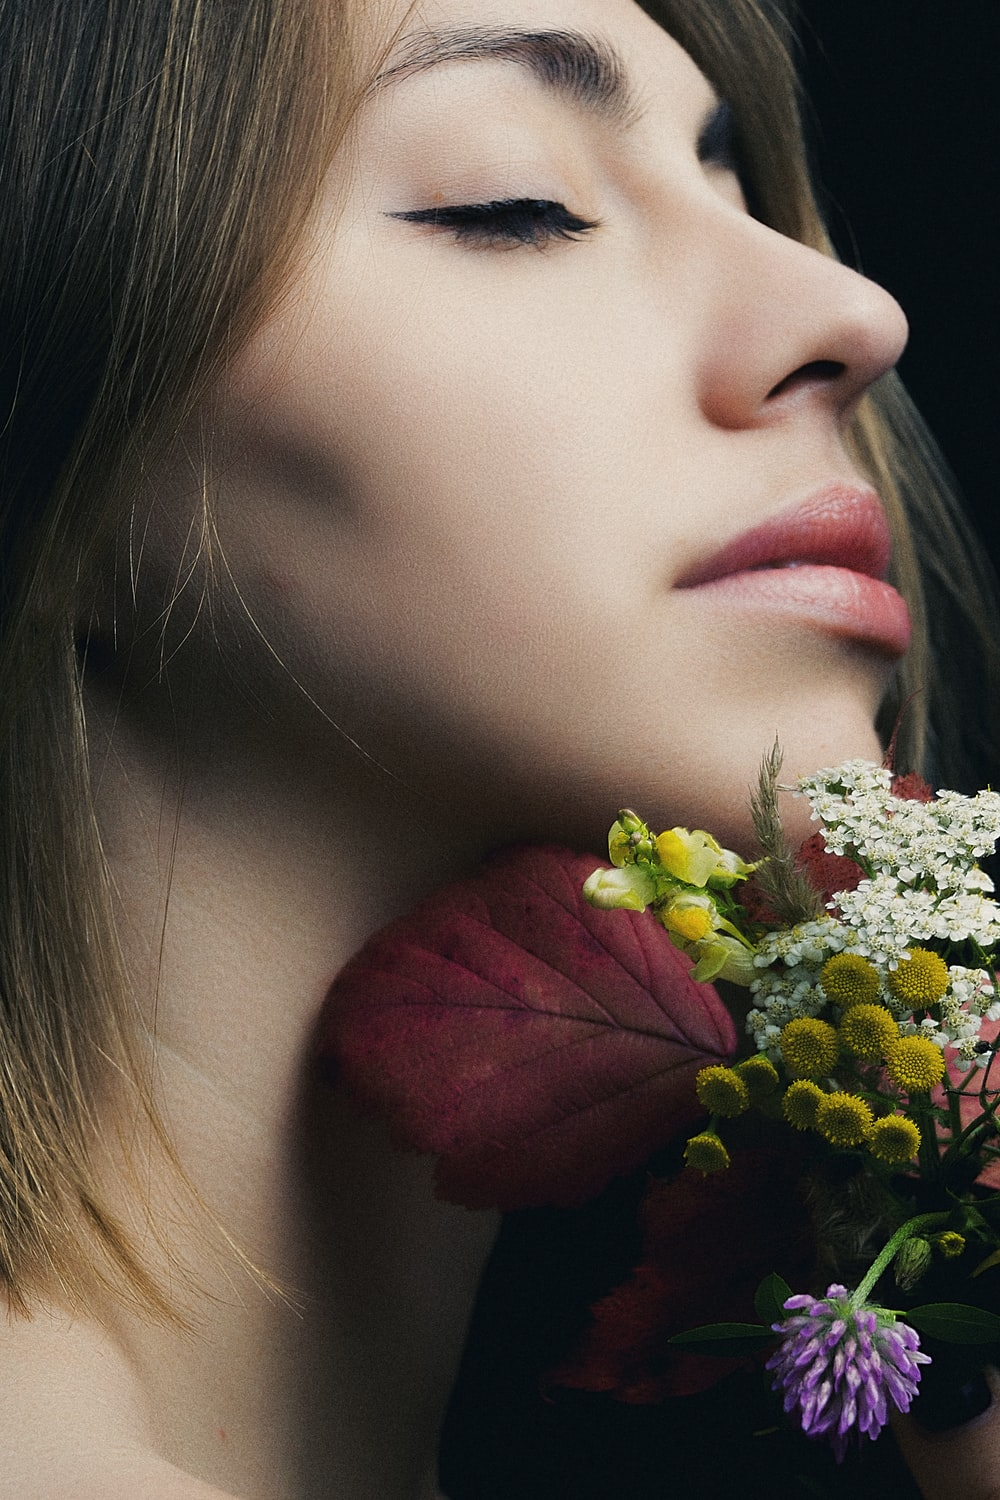 woman closing her eyes next to flowers